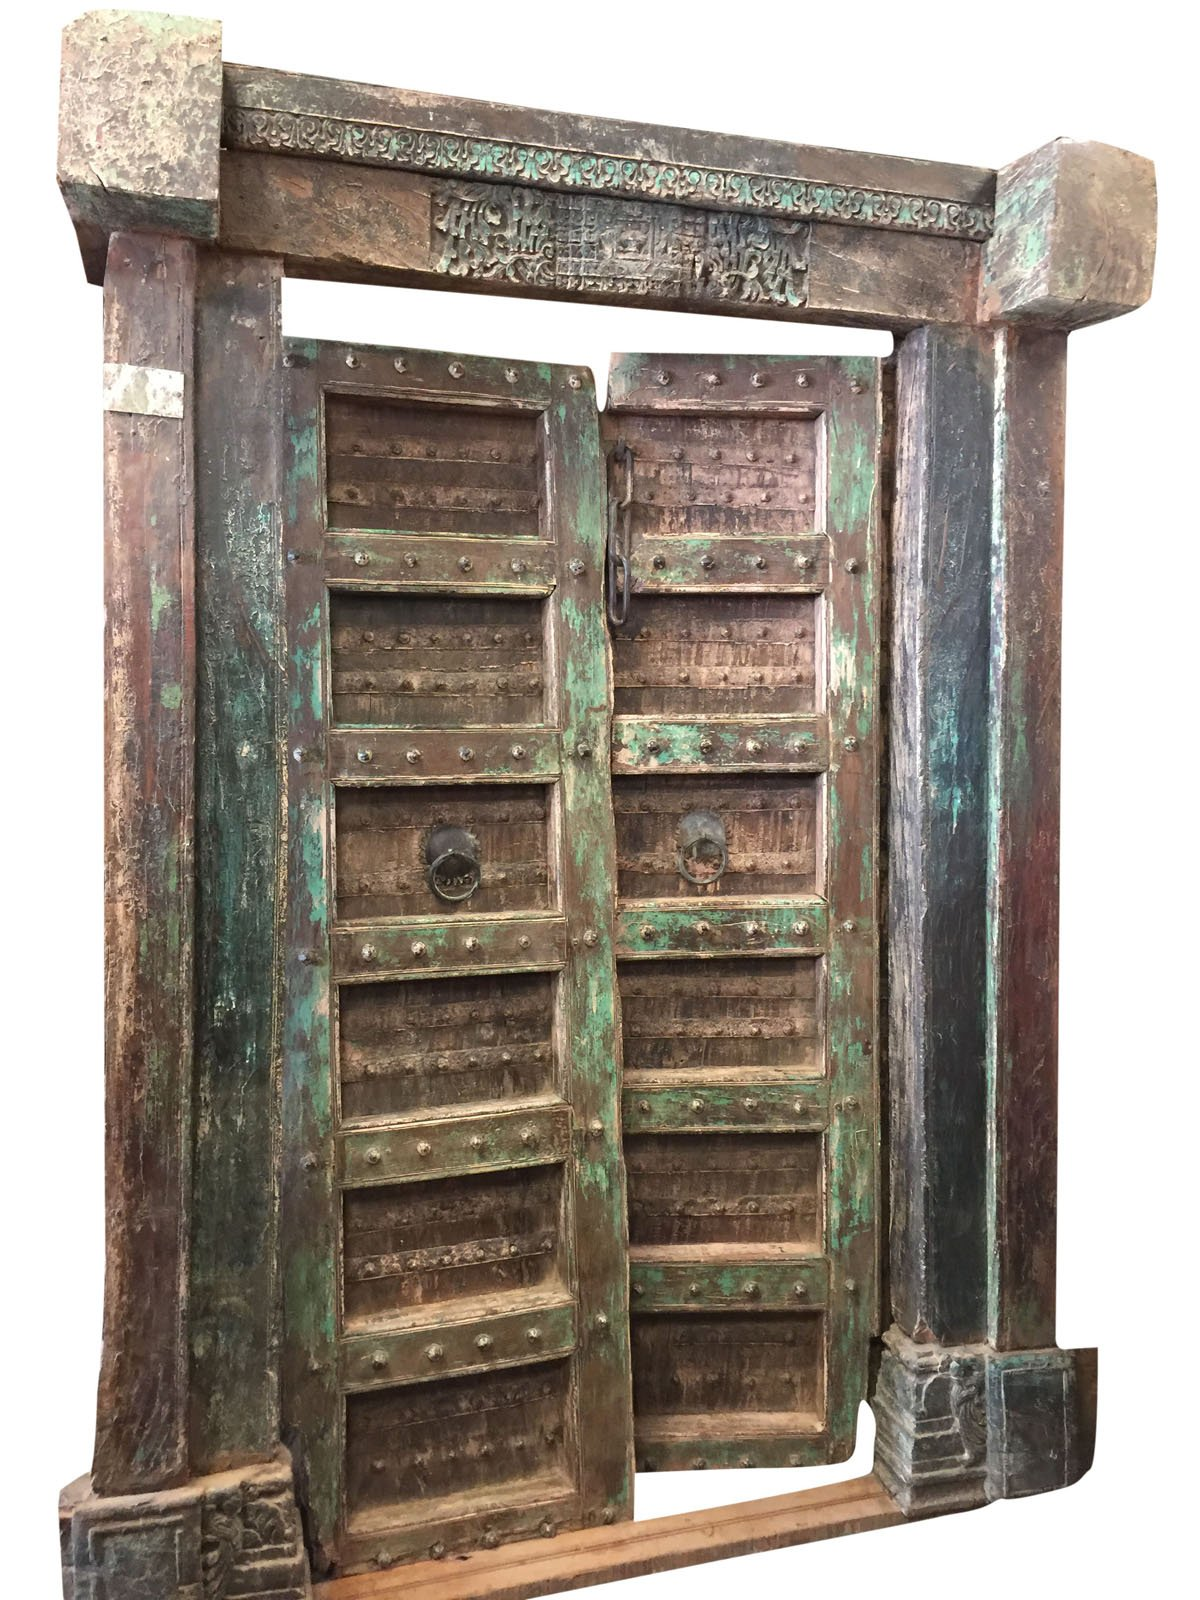 Antique Doors Brass Floral Patina Double Door Spanish Tuscan Interiors Architecture 18C by Mogul Interior